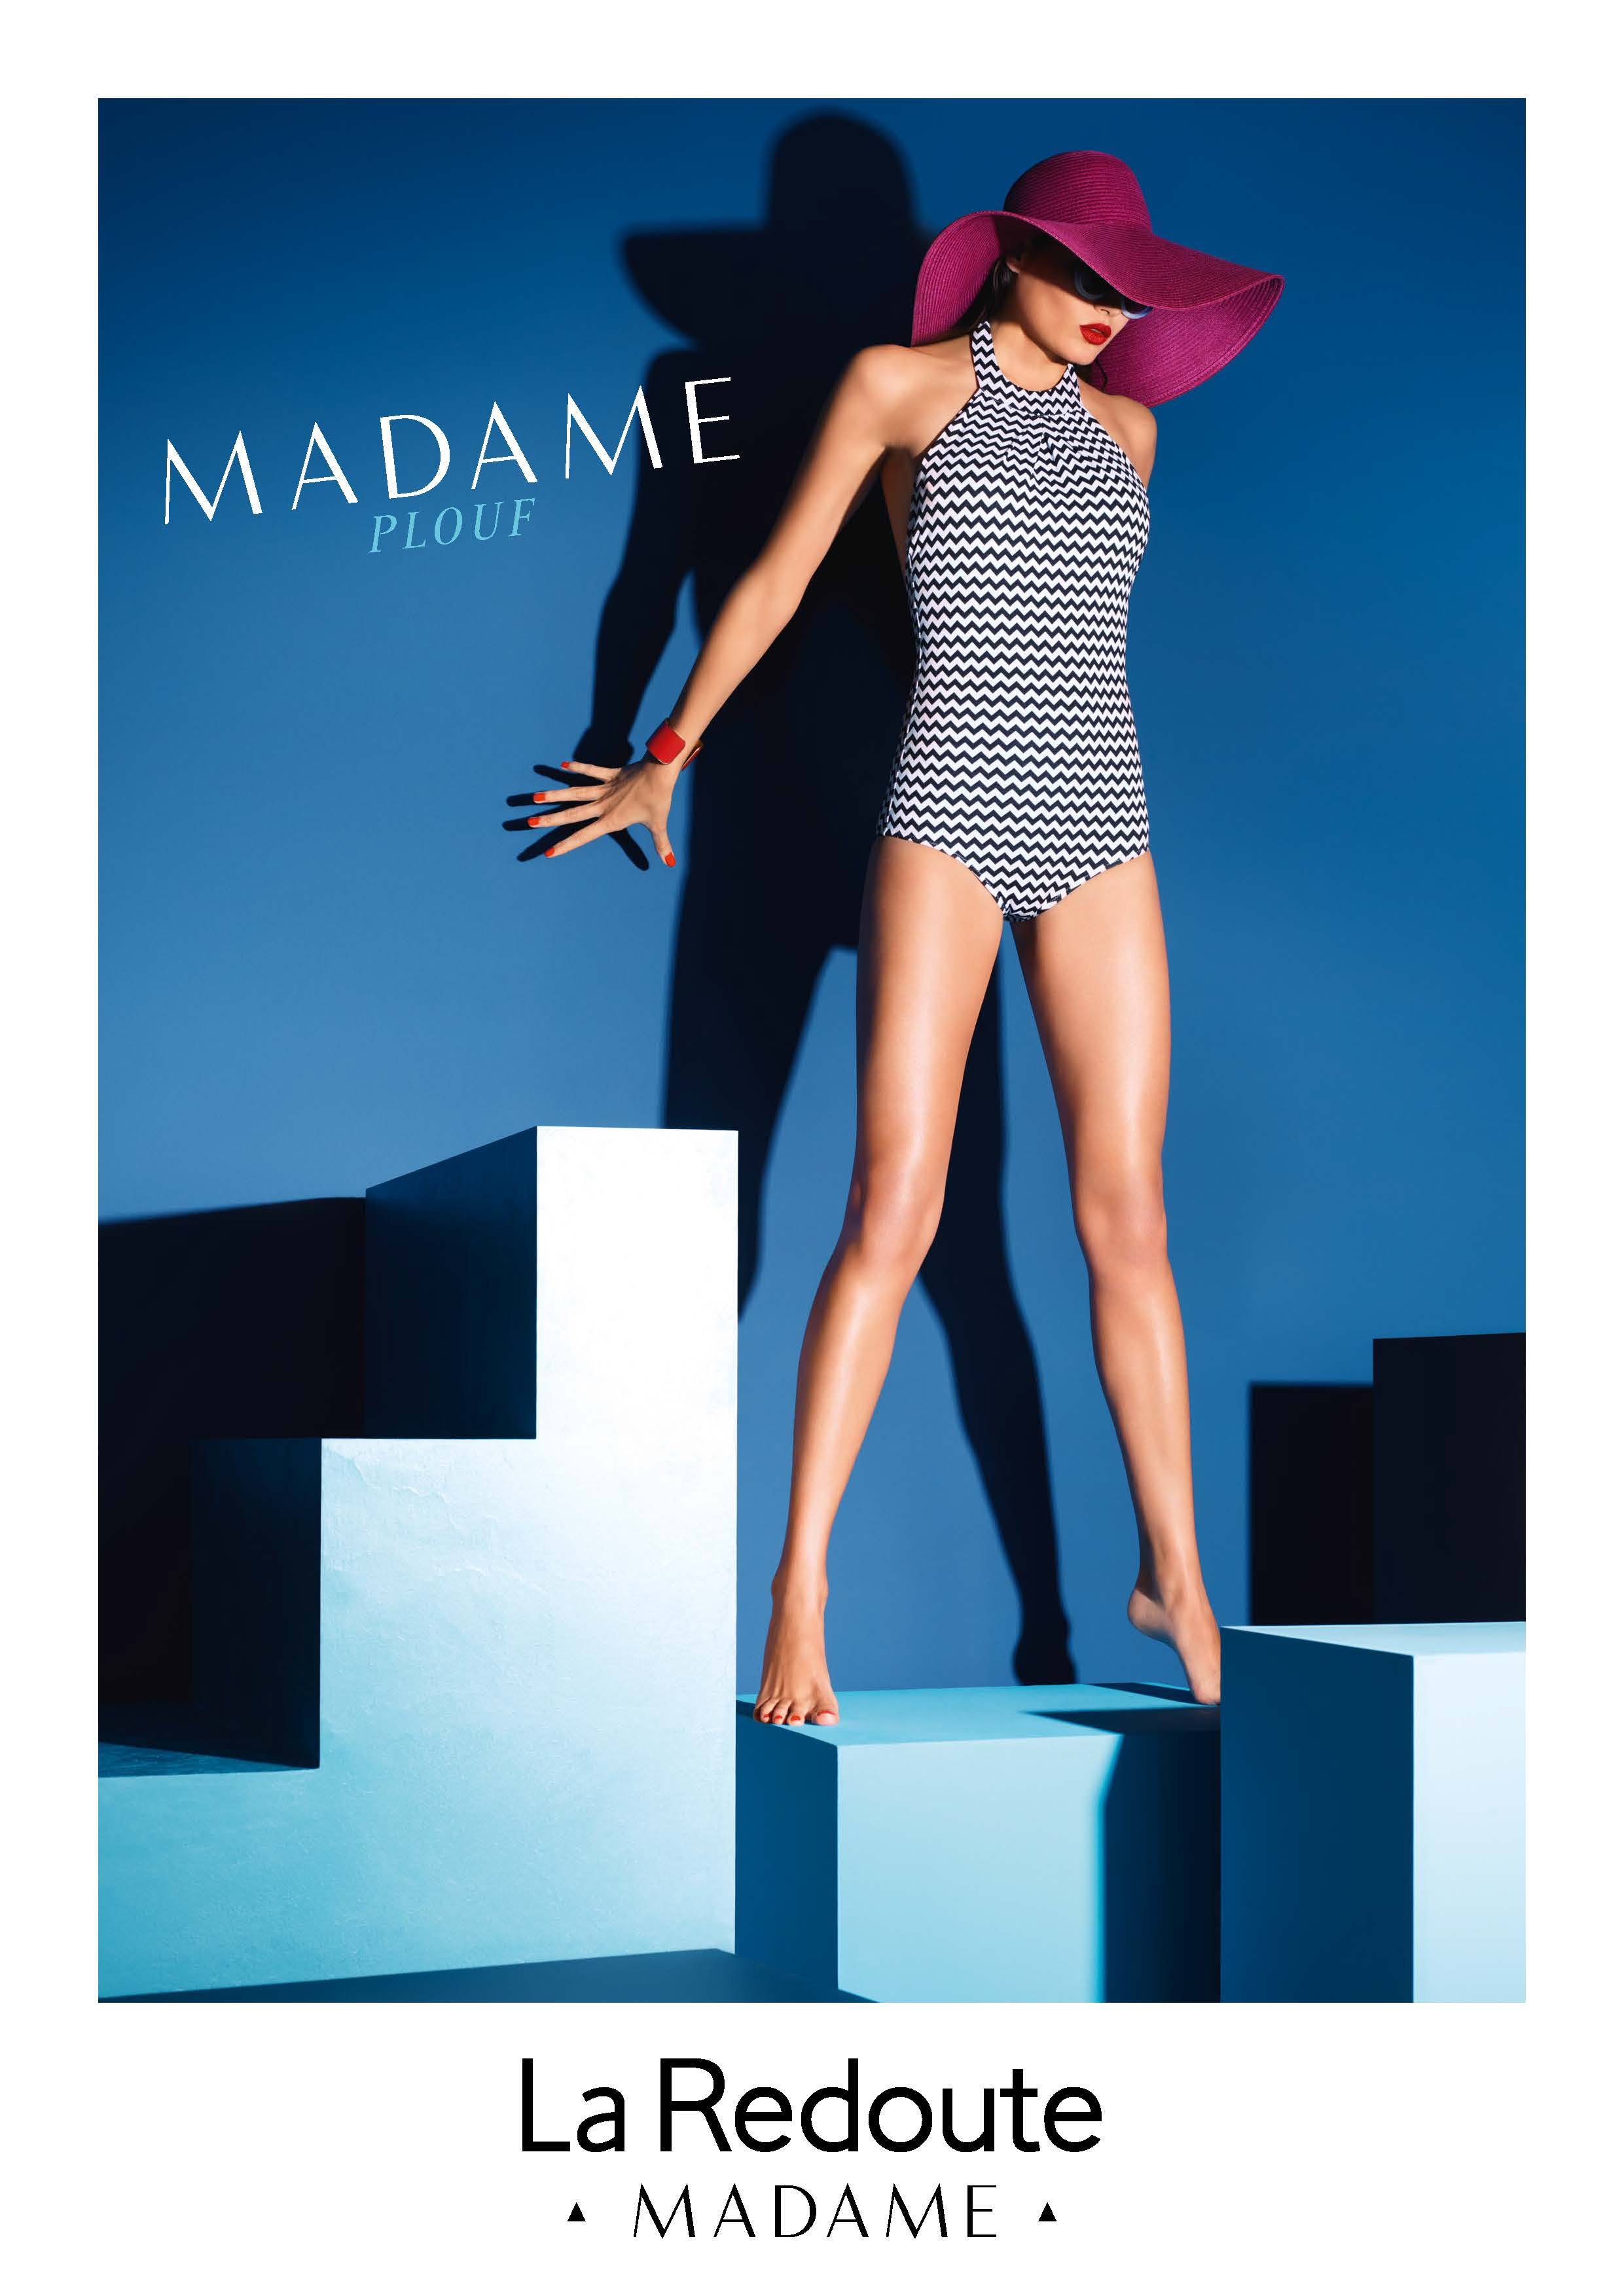 la-redoute-madame-2016-publicite-marketing-marque-mode-femme-france-agence-fred-farid-8